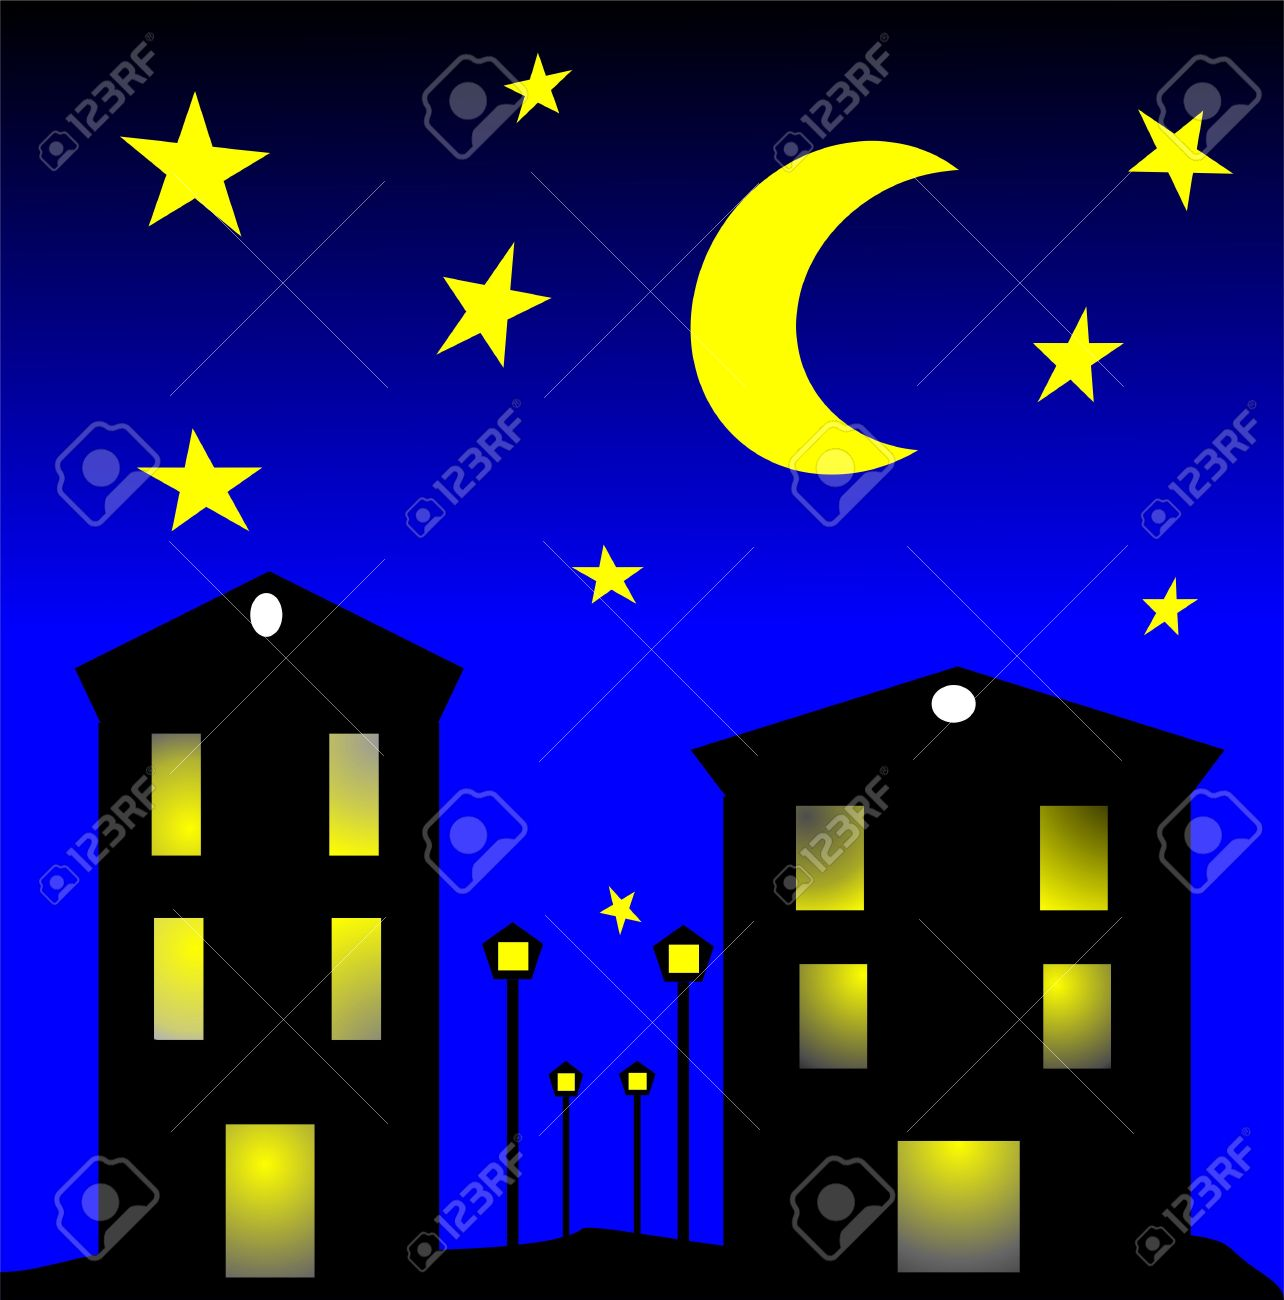 Night photograph clipart #3